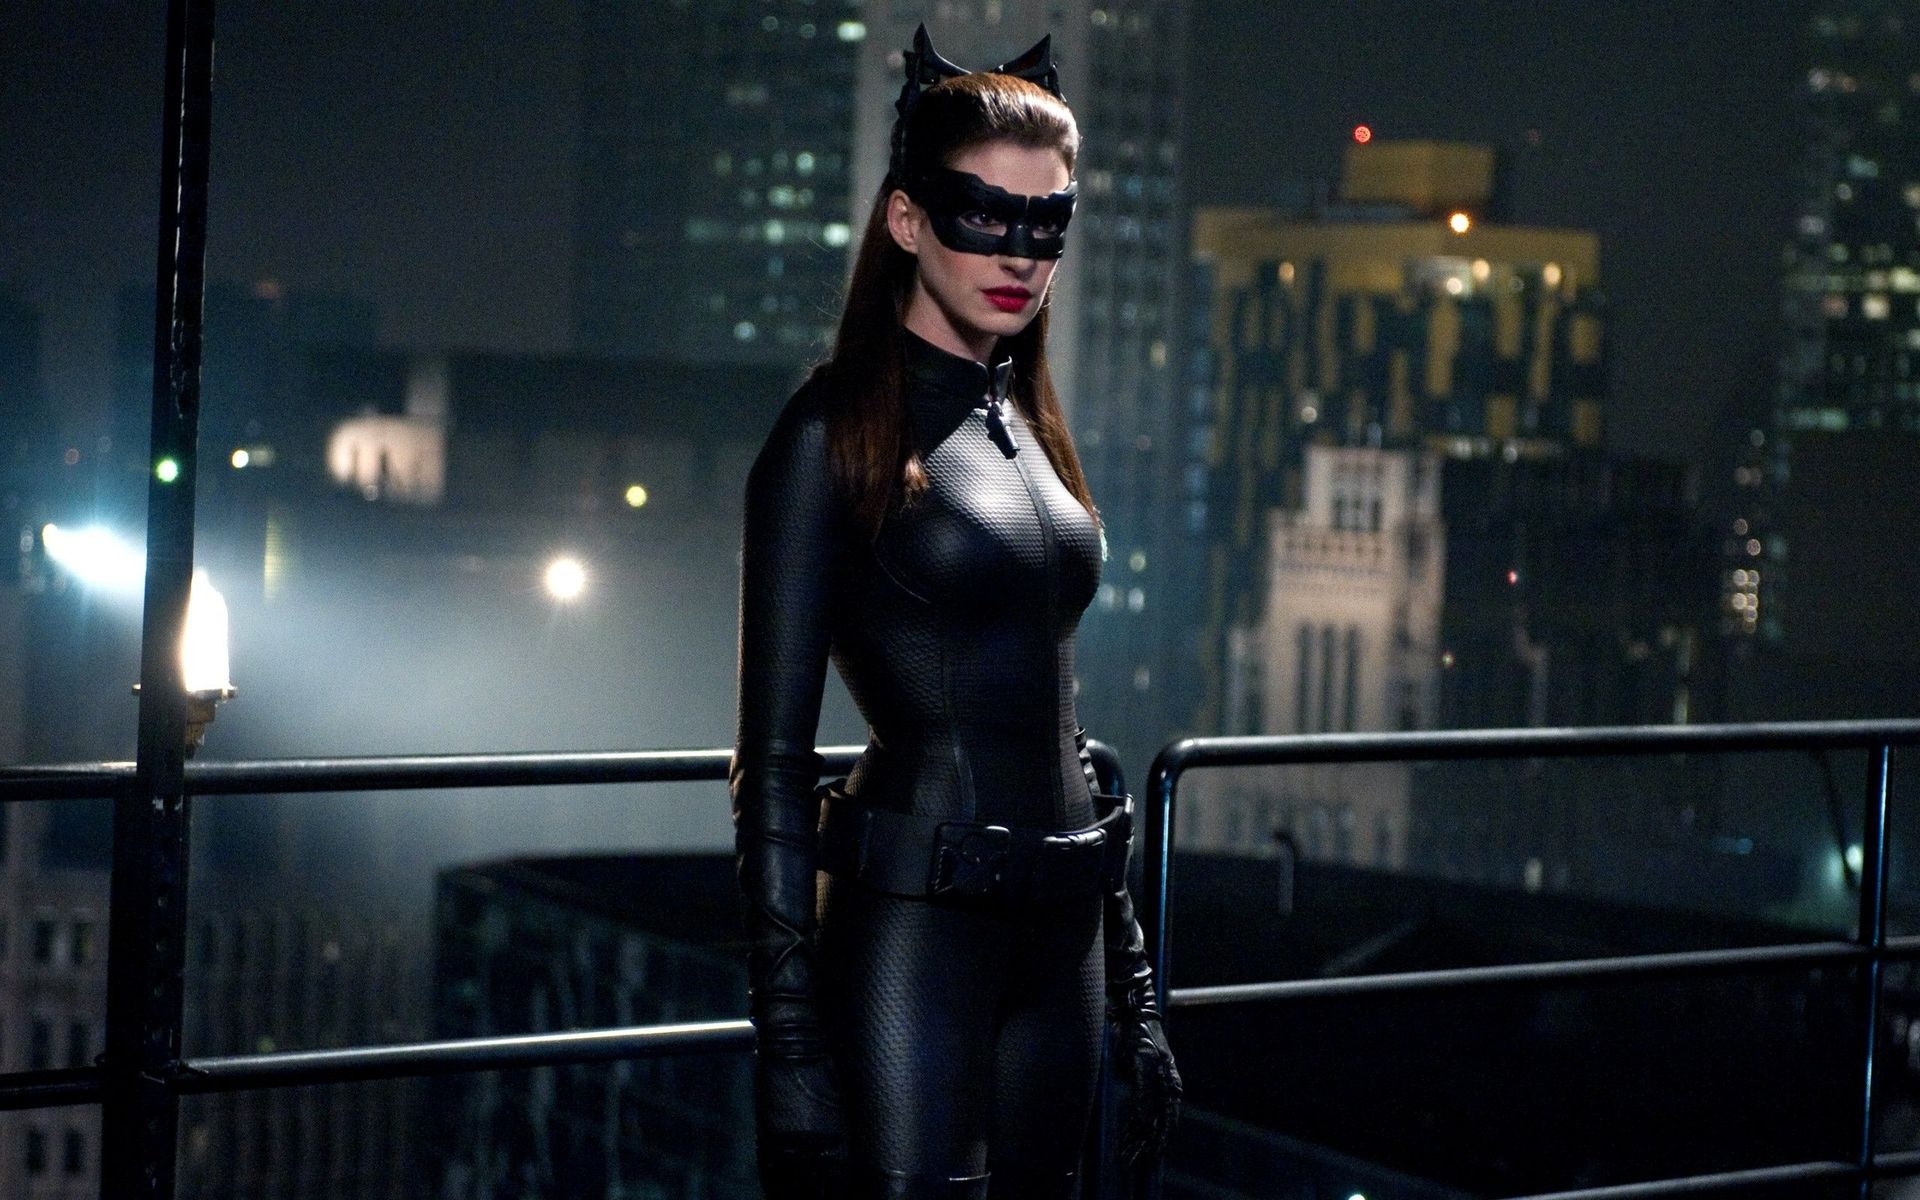 Anne Hathaway Would Like To Cameo As Catwoman In Future DC Comics Movies